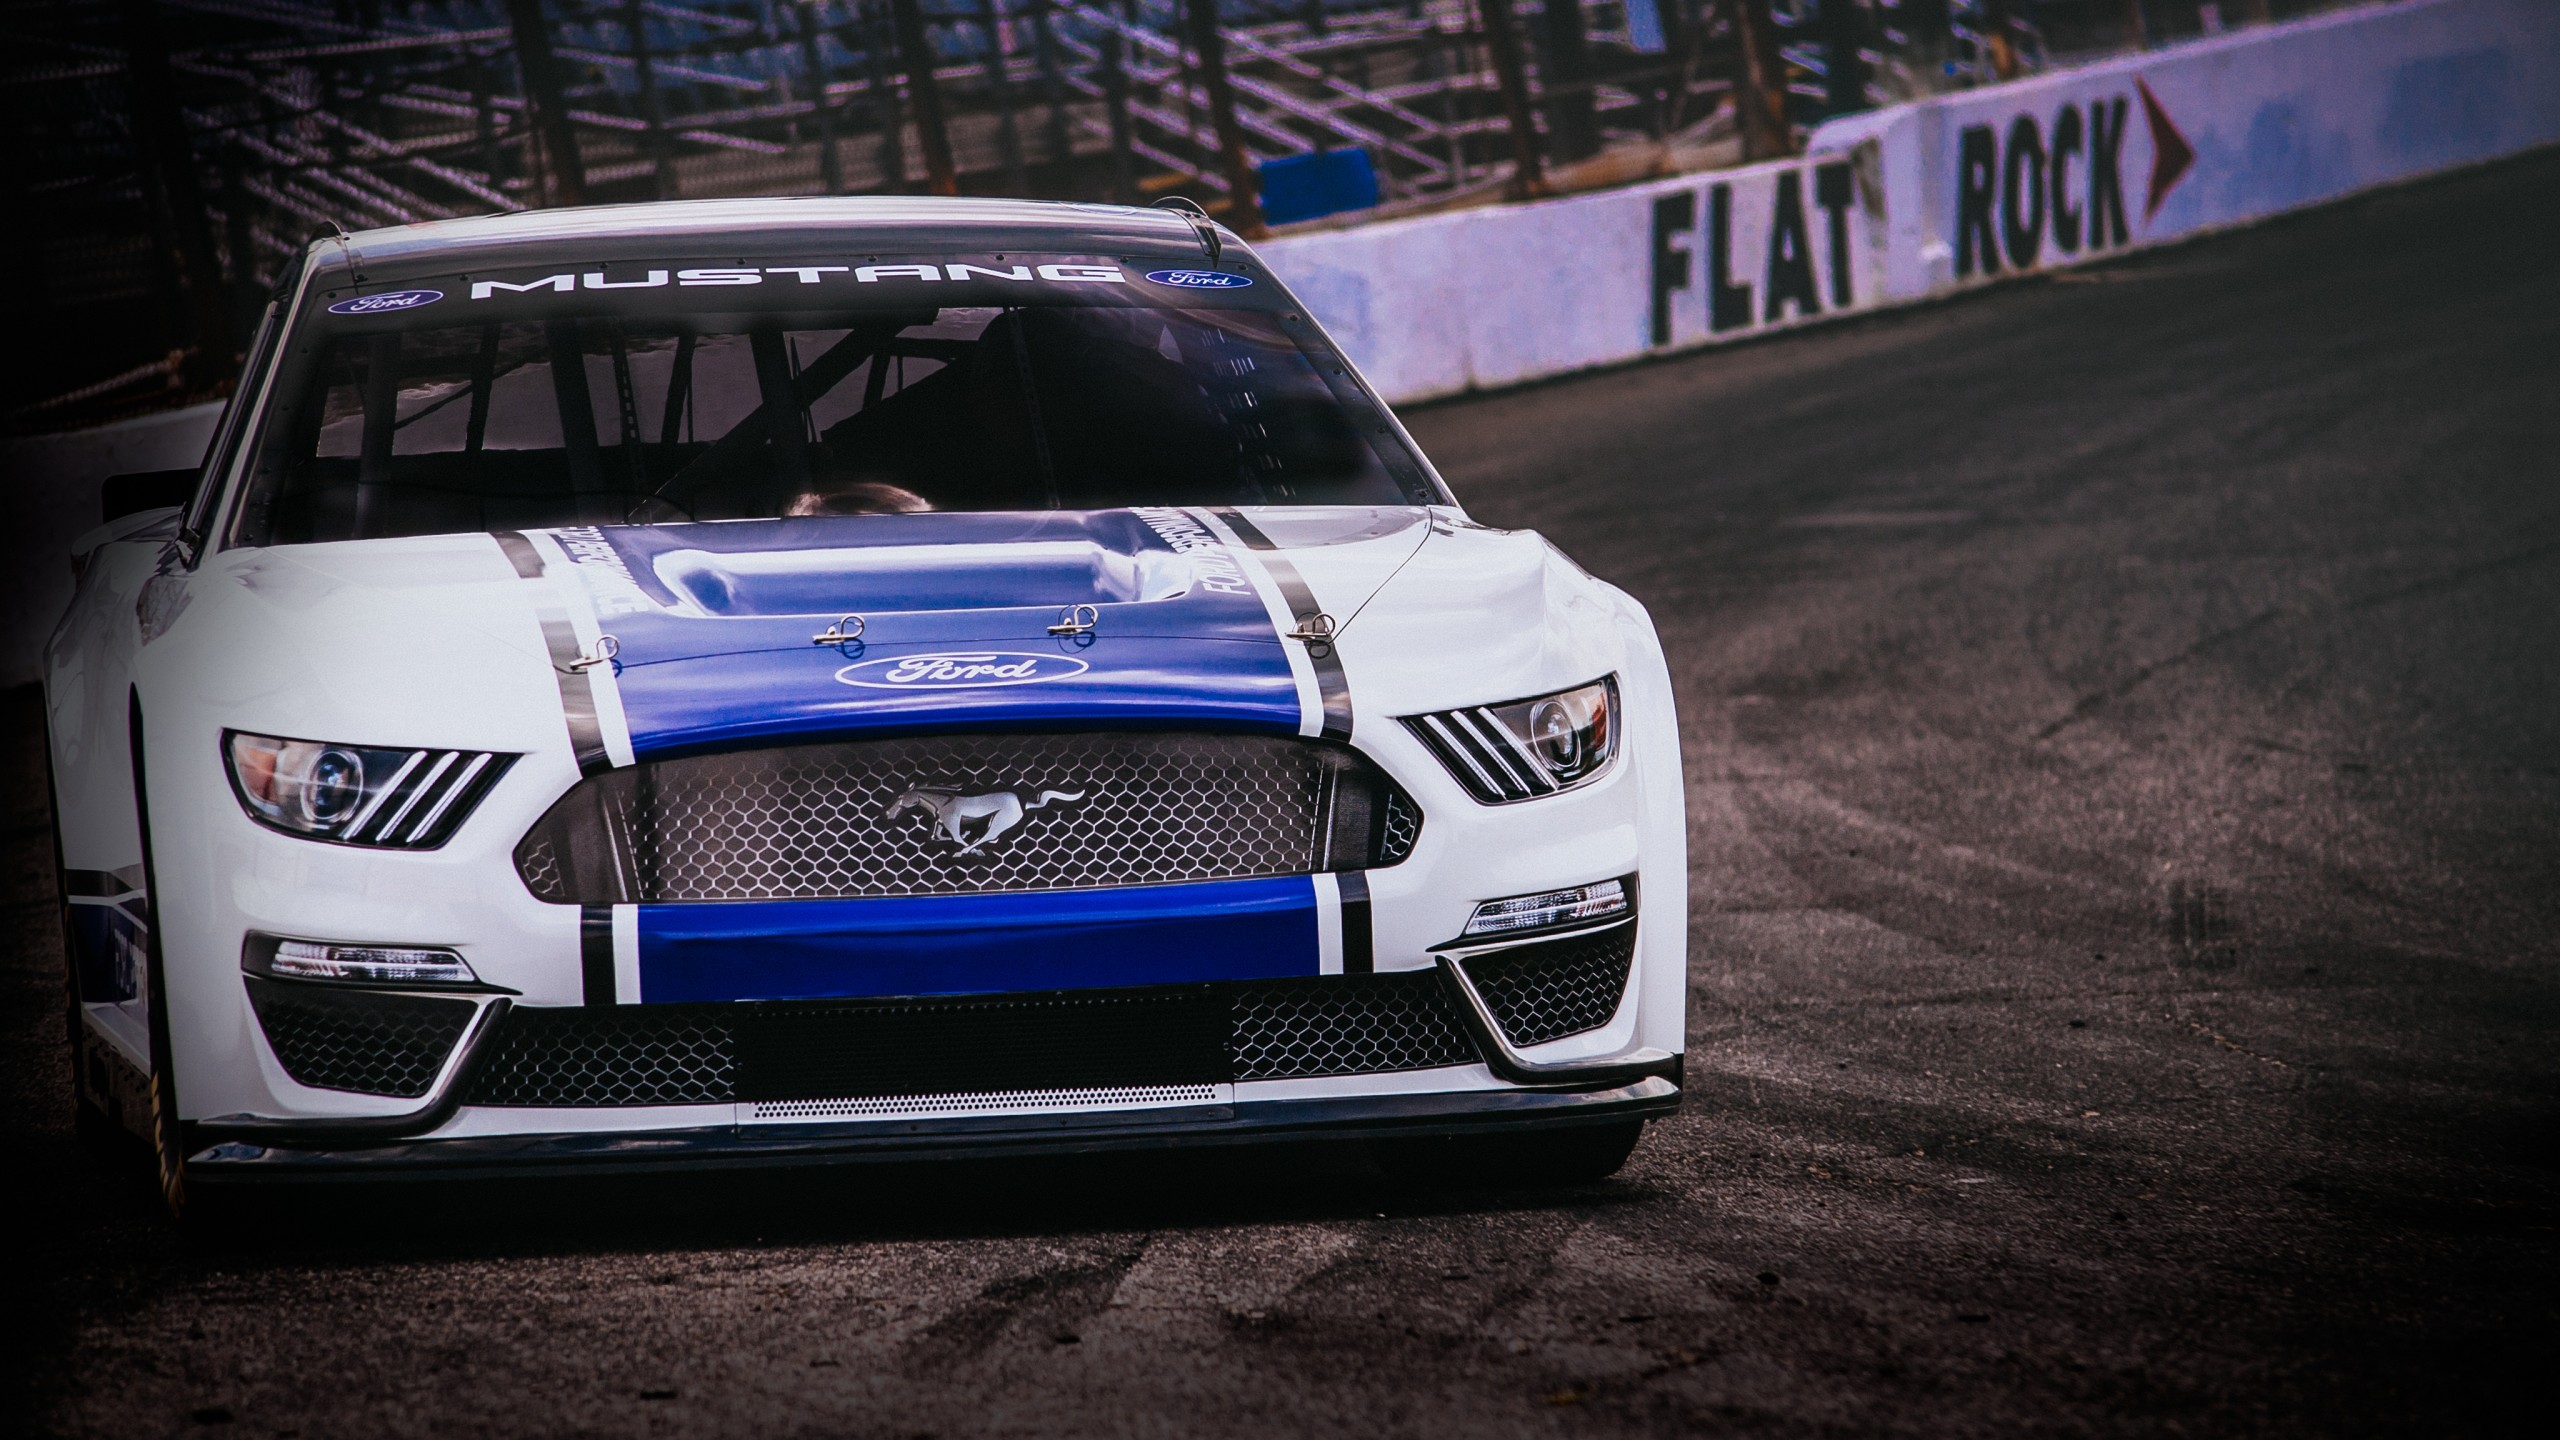 Ford NASCAR Mustang 2019 4K Wallpaper | HD Car Wallpapers ...